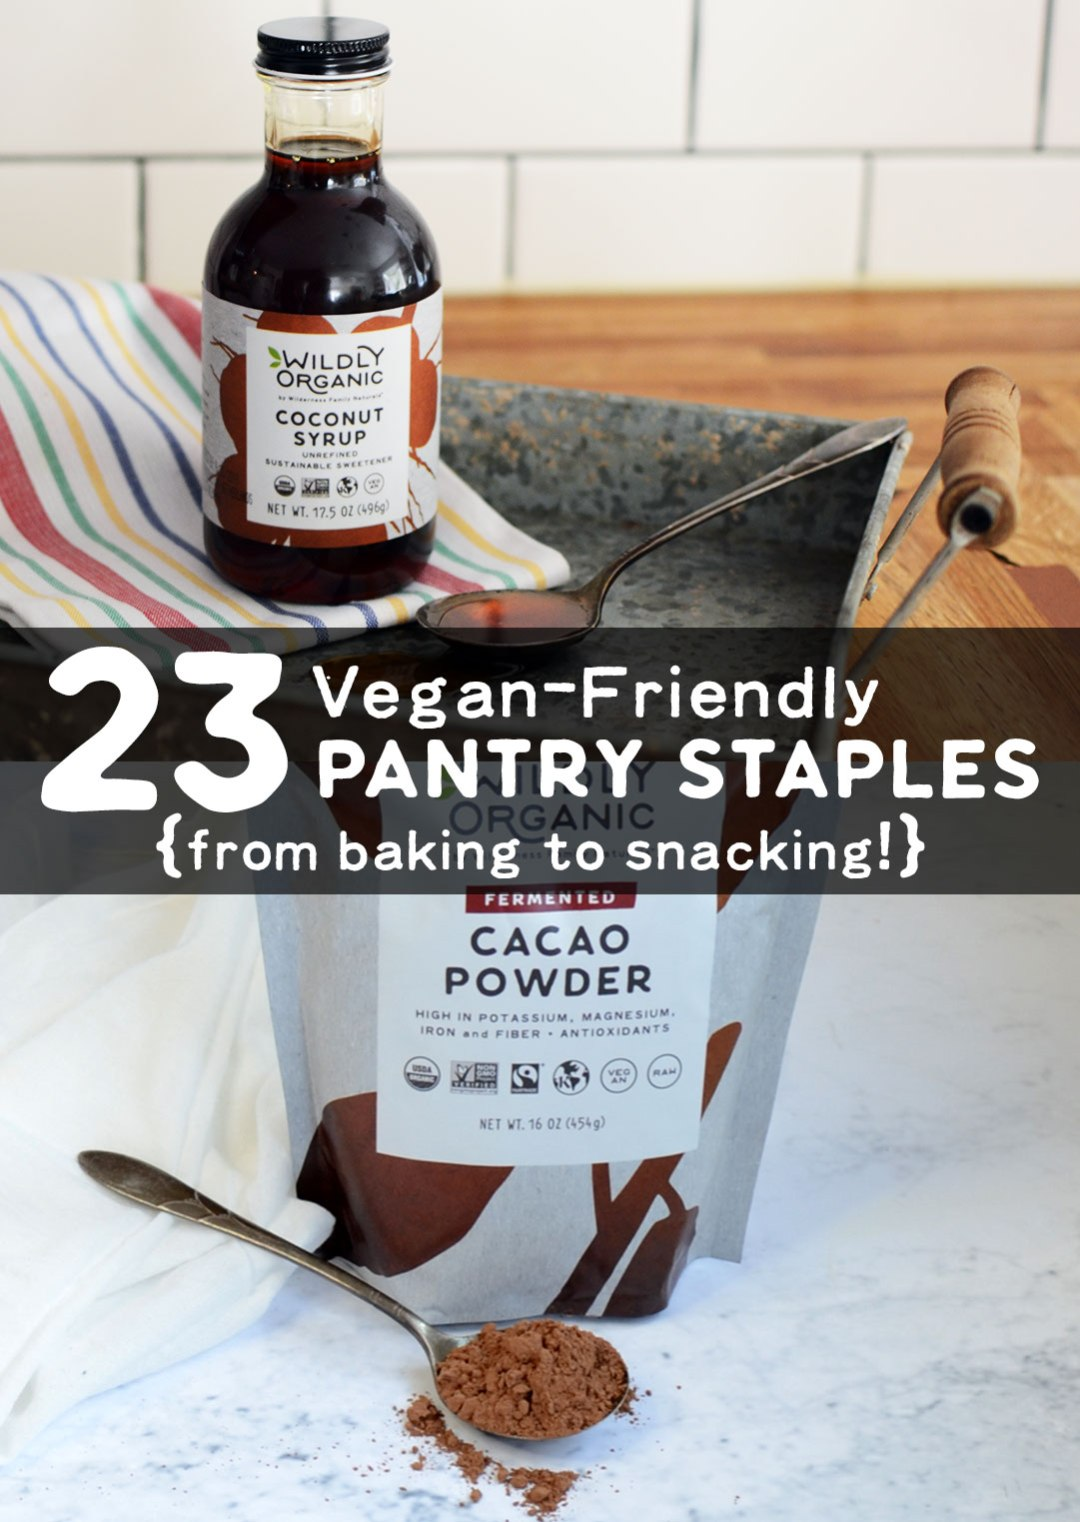 A recent report reveals that 6% of Americans now identify as vegan. There's no need to get too fancy when it comes to stocking your pantry with vegan-friendly alternatives though. To make life easier, here's an easy reference list of Wildly Organic's vegan-friendly pantry staples -- everything you need for healthy, vegan recipes from baking to snacking!